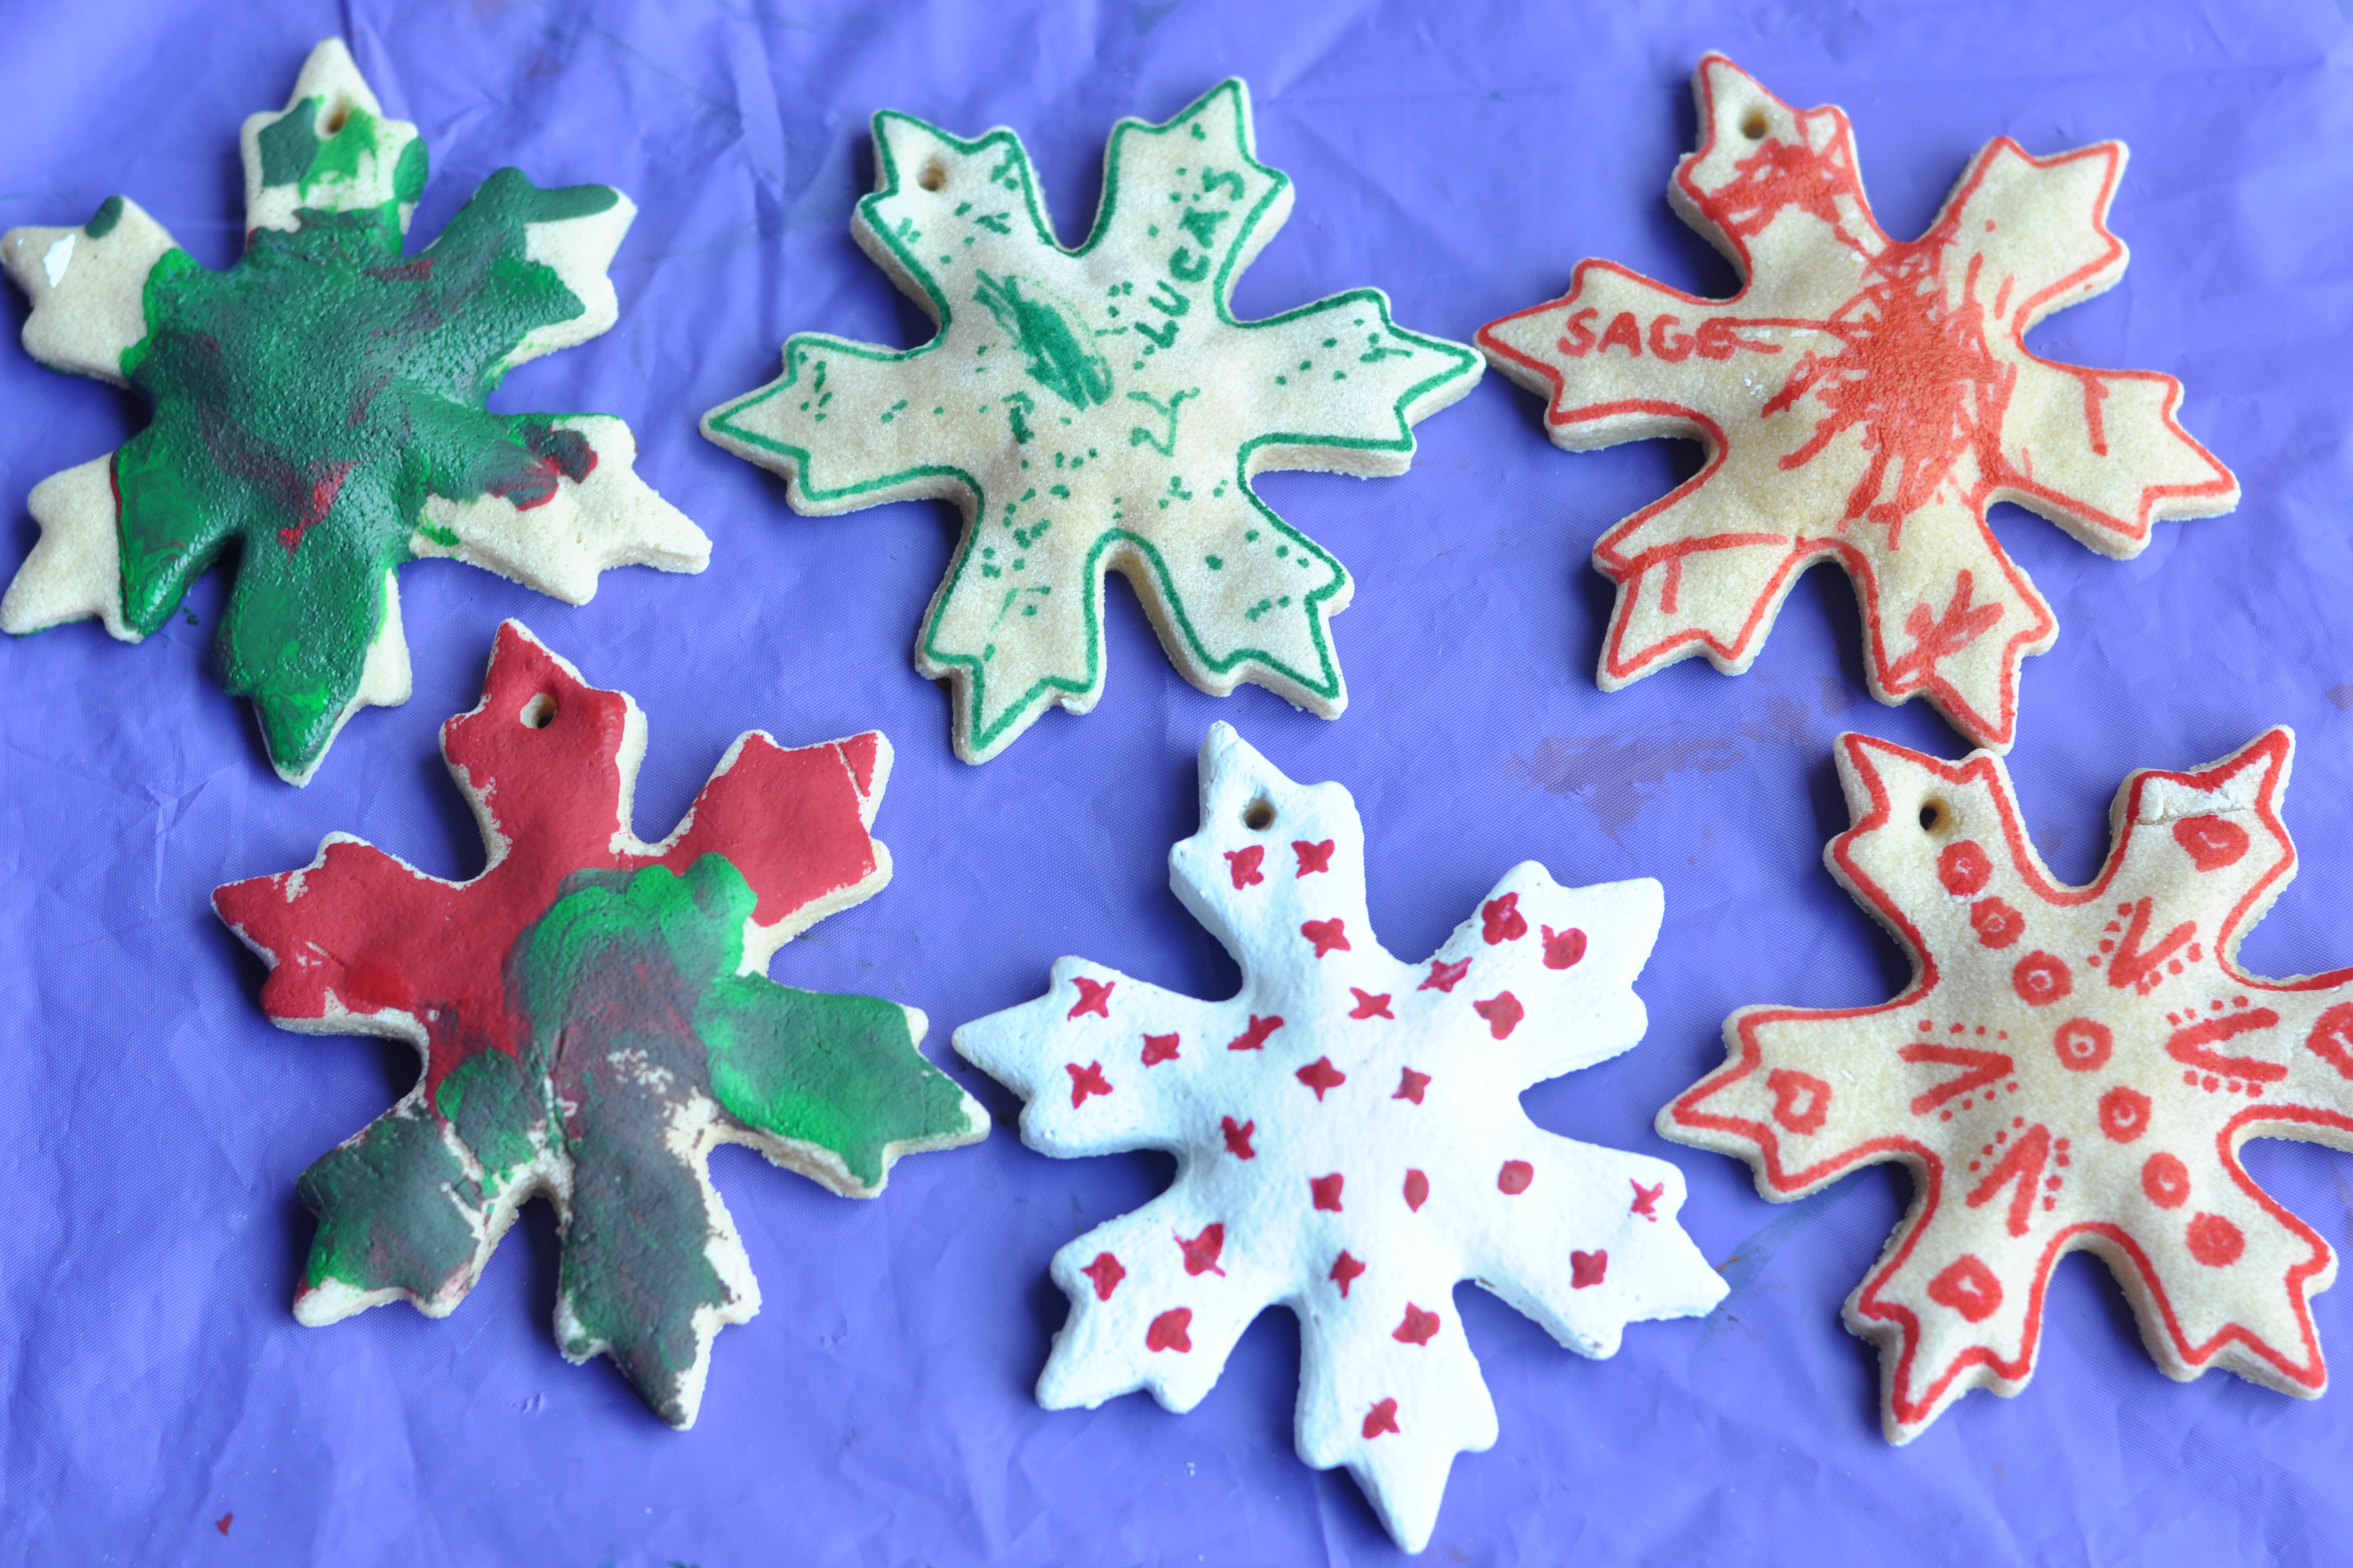 salt-dough ornaments-1273